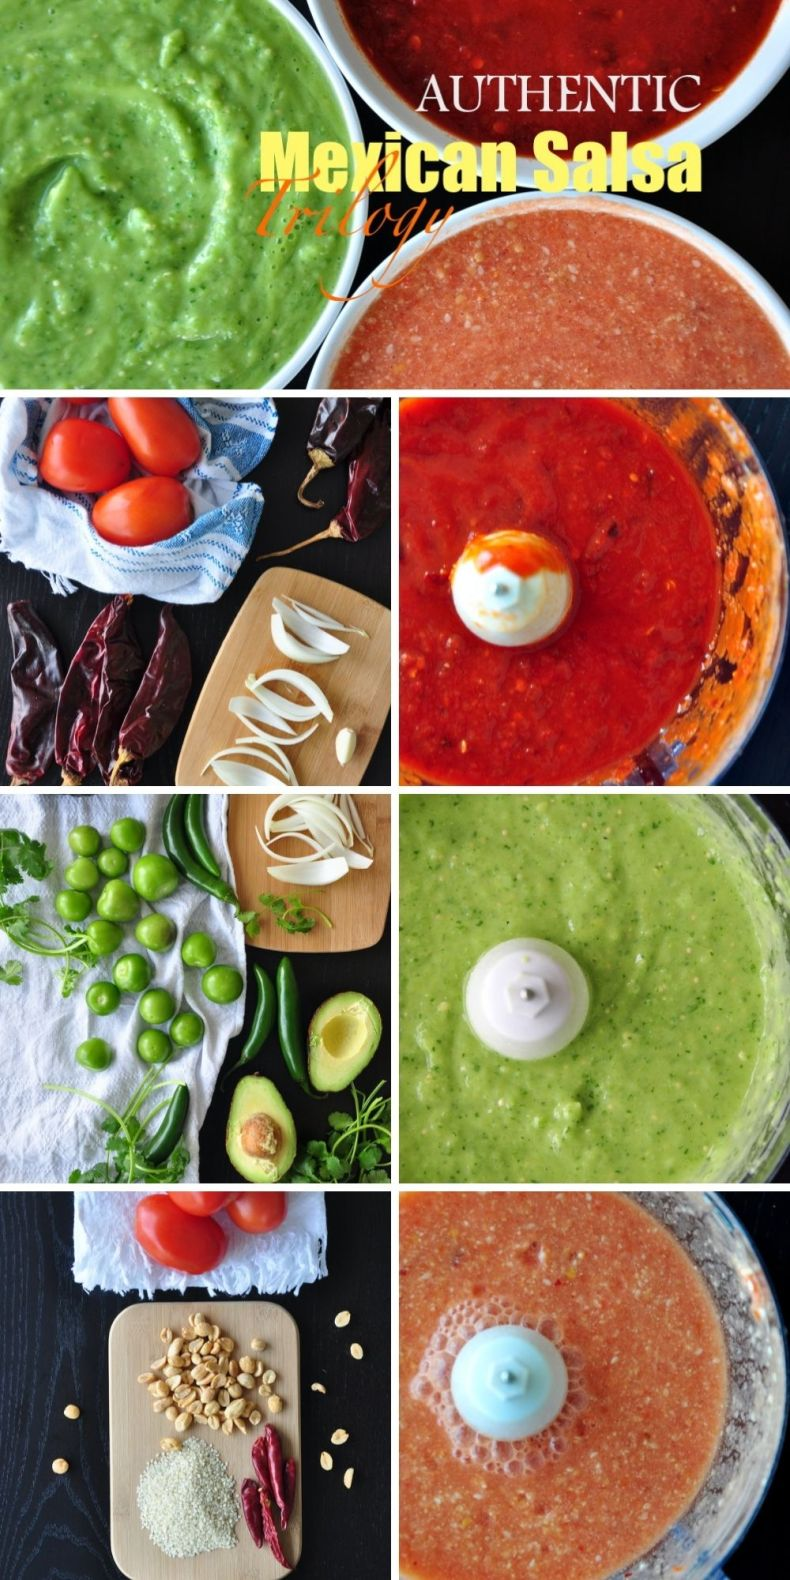 Authentic Mexican Salsa Trilogy